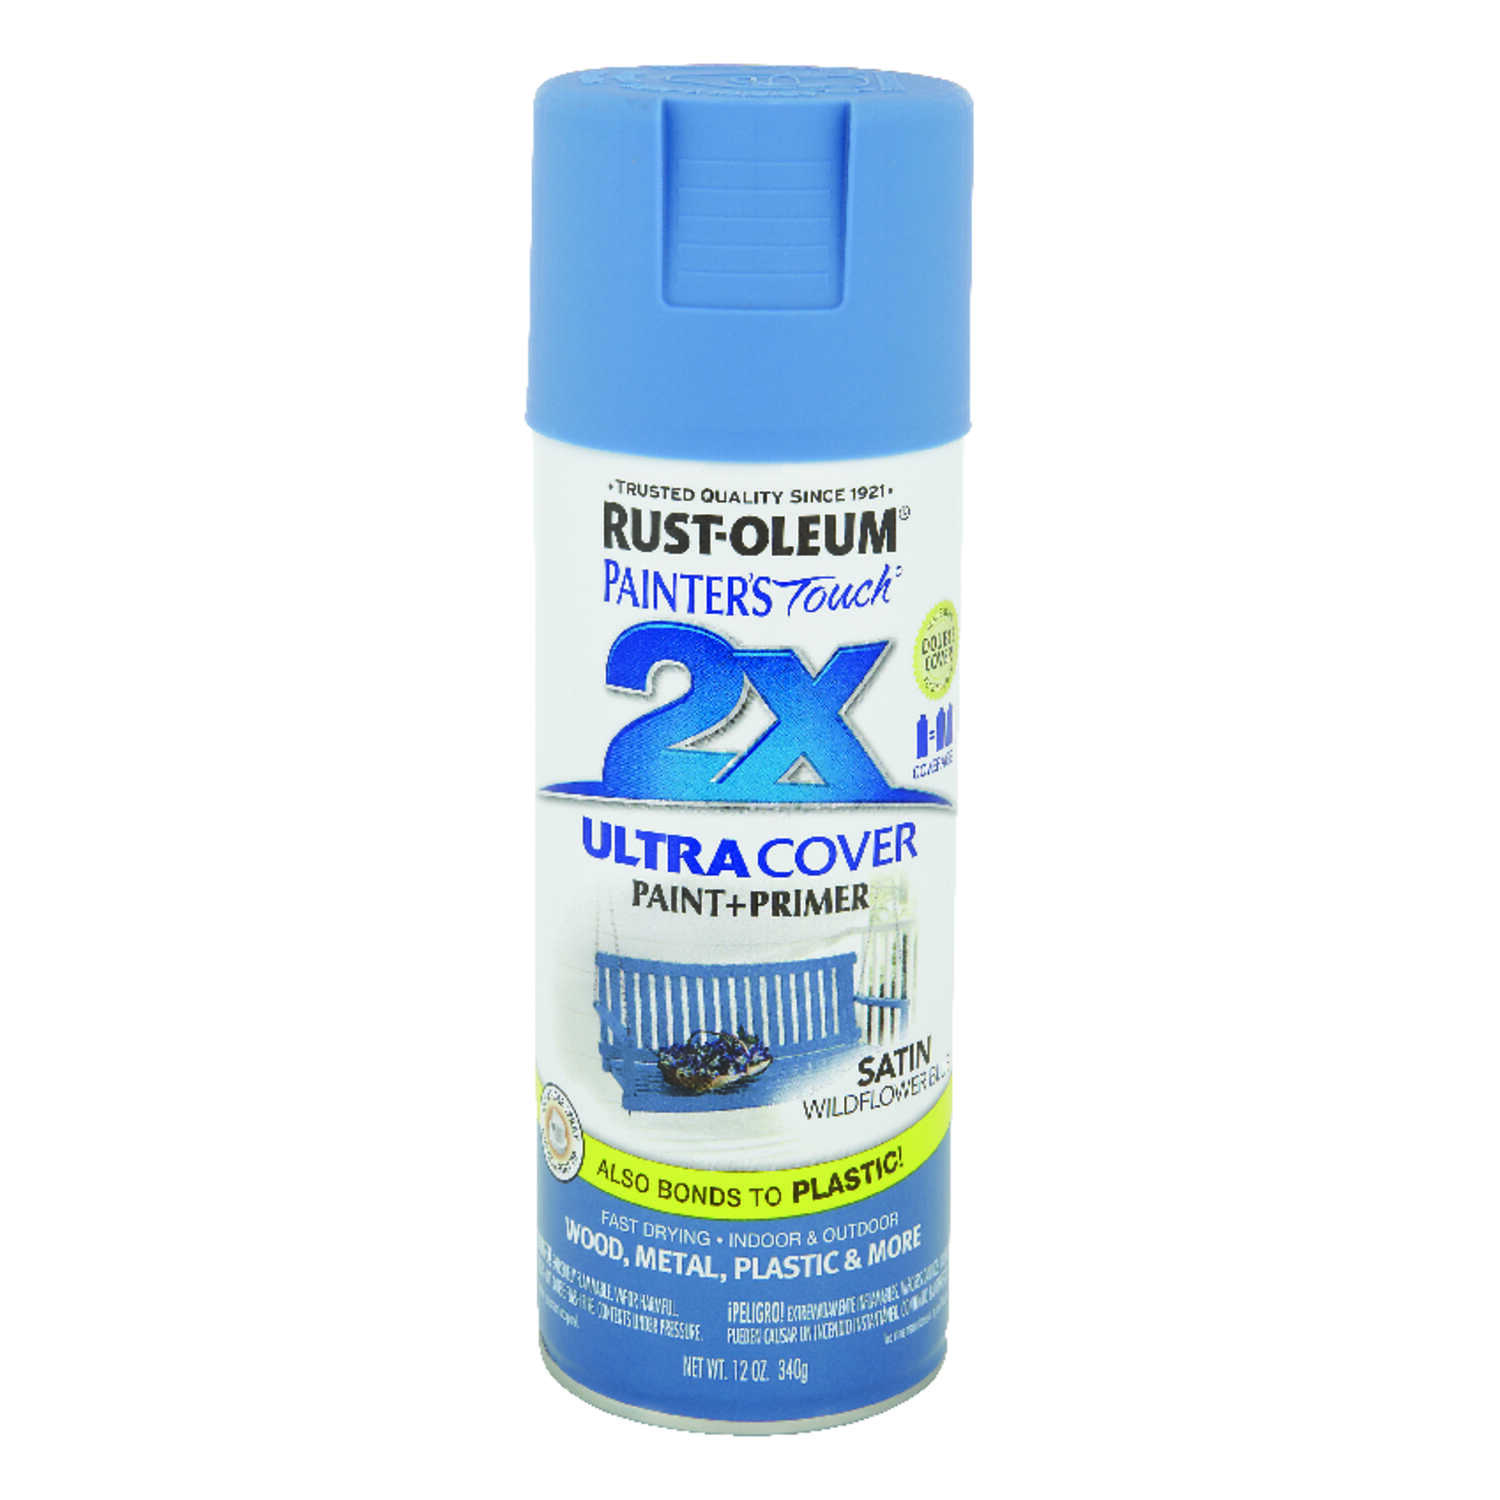 Rust-Oleum  Painters Touch Ultra Cover  Satin  Wildflower Blue  Spray Paint  12 oz.